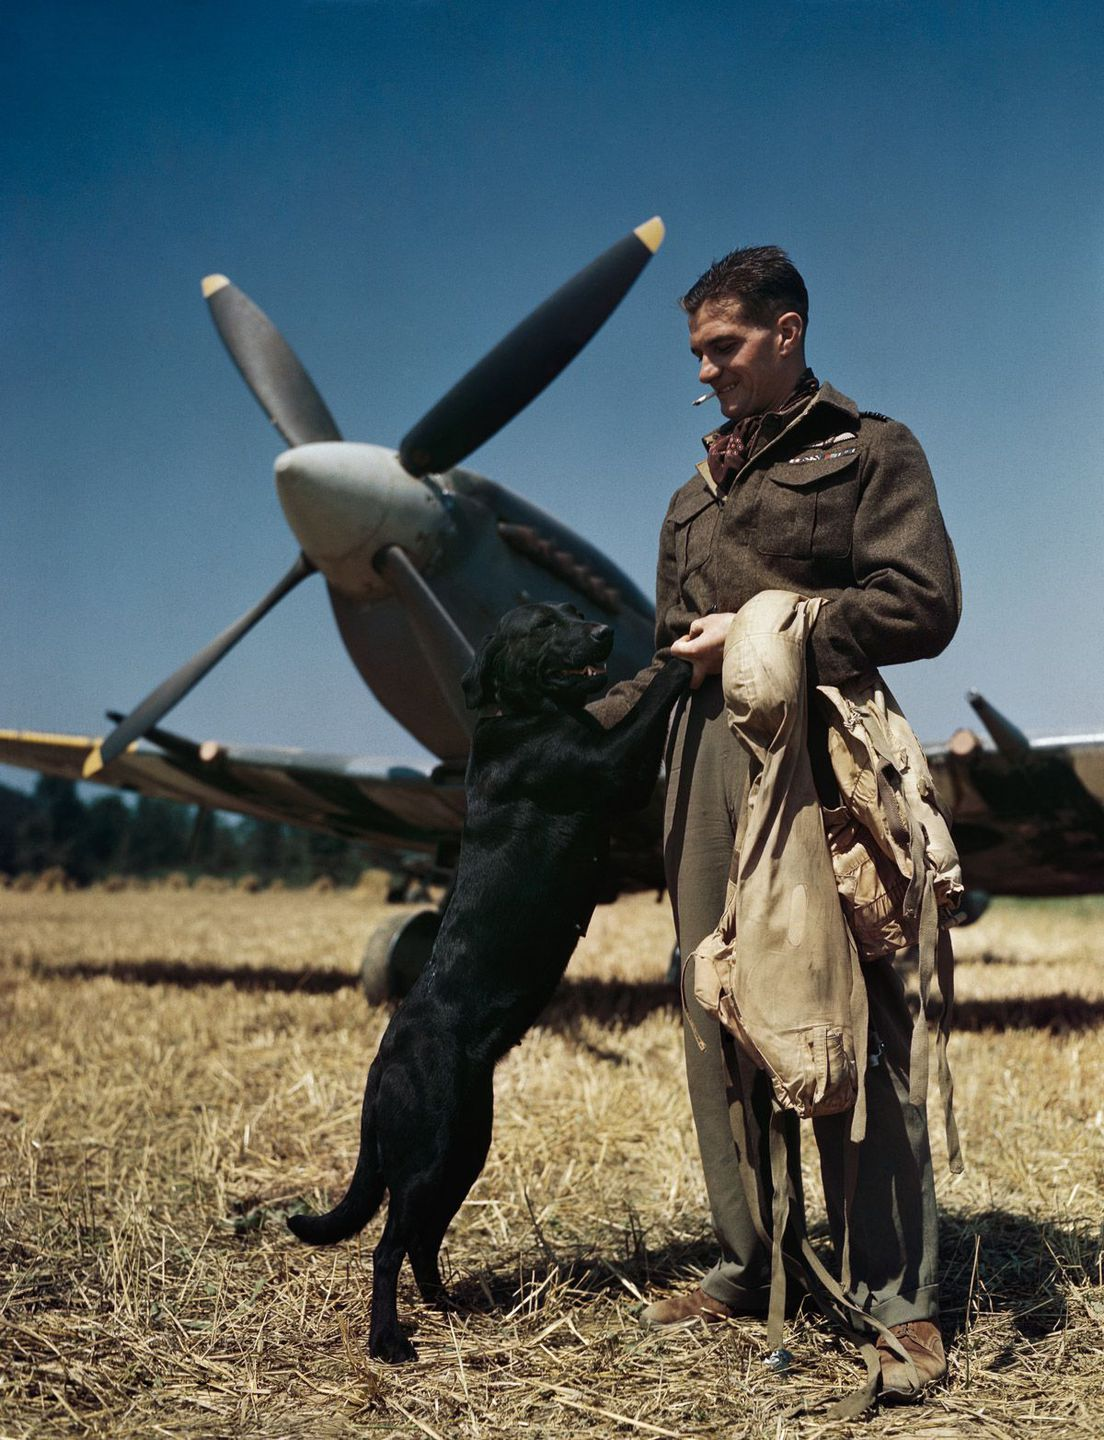 July 1944 The RAF's top-scoring fighter pilot, Wing Commander James 'Johnnie' Johnson, with his Spitfire and pet Labrador 'Sally' in Normandy.